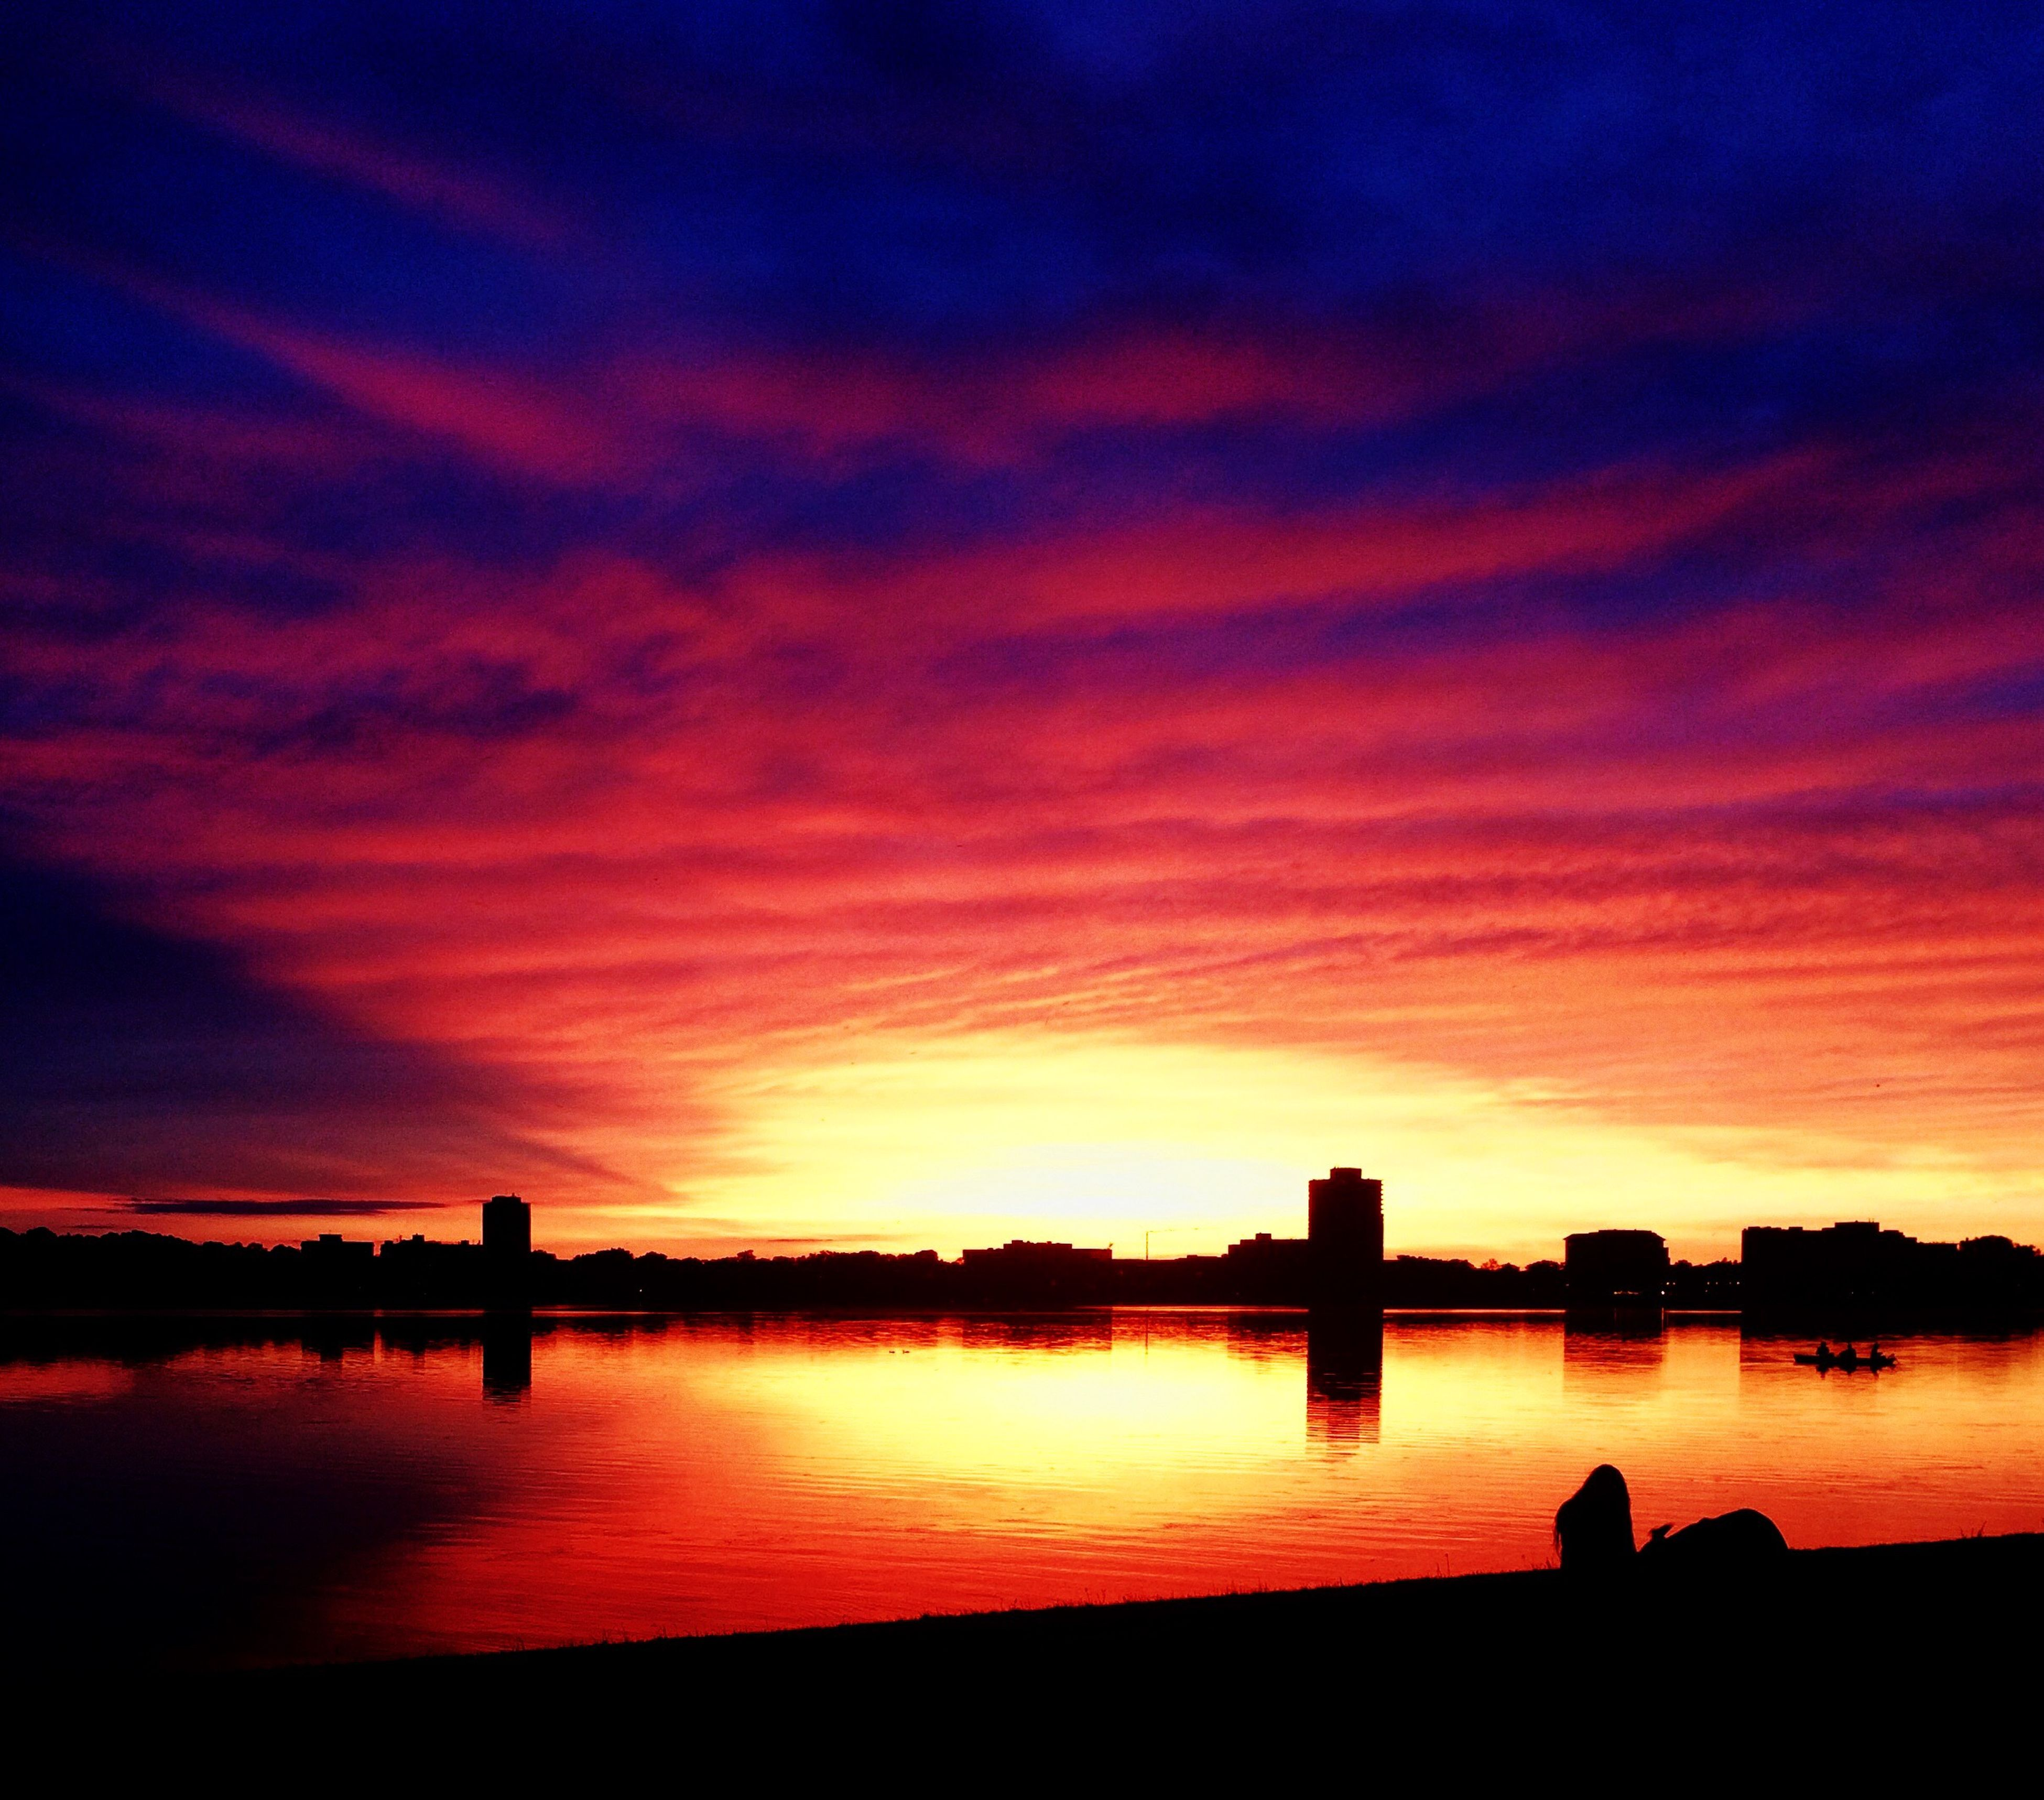 sunset, silhouette, orange color, sky, water, built structure, architecture, scenics, beauty in nature, tranquil scene, building exterior, waterfront, tranquility, dramatic sky, cloud - sky, idyllic, reflection, nature, cloud, lake